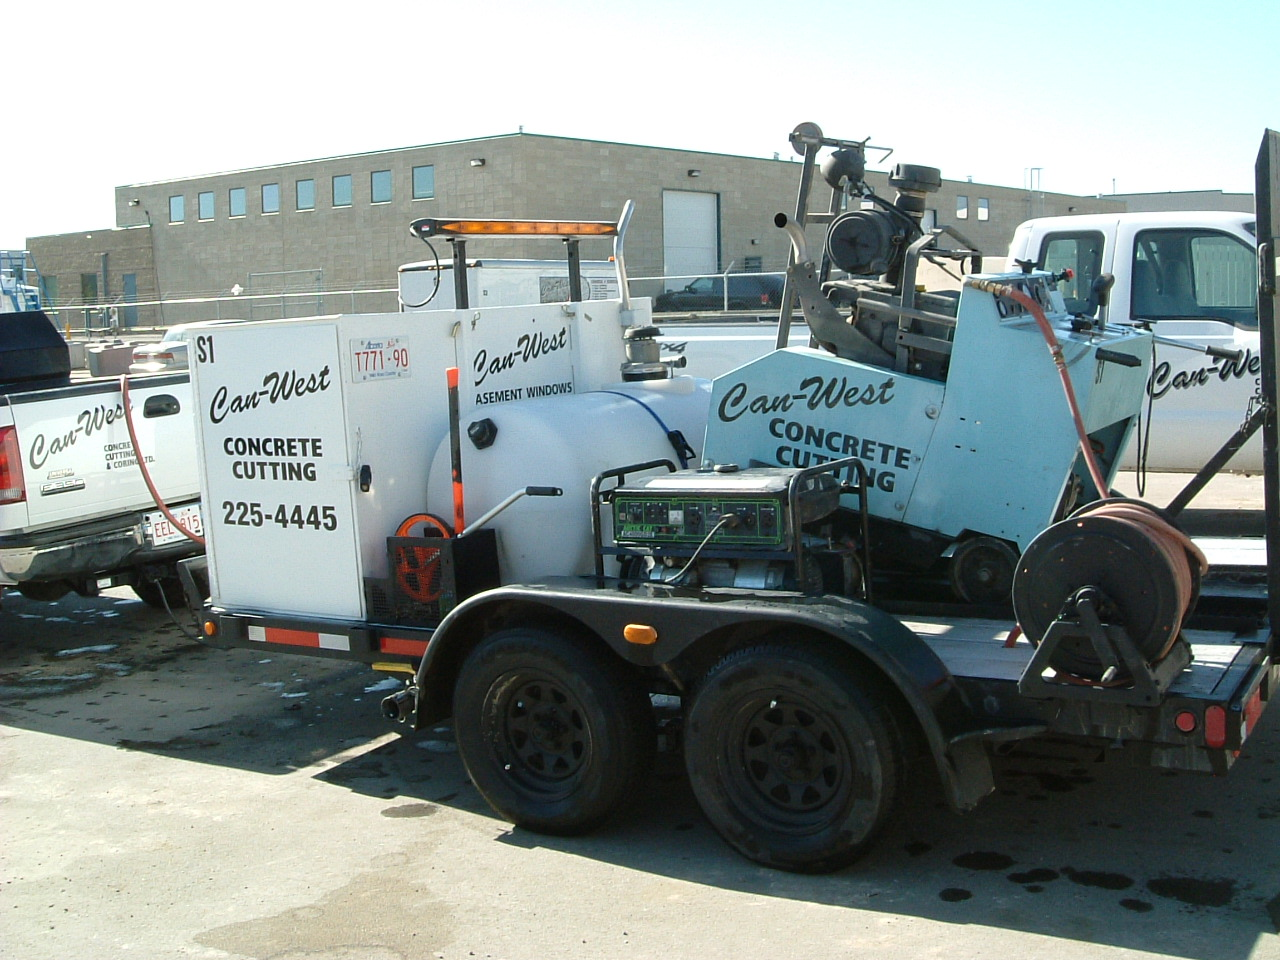 Concrete Wall Cutting Canwest Concrete | Autos Post